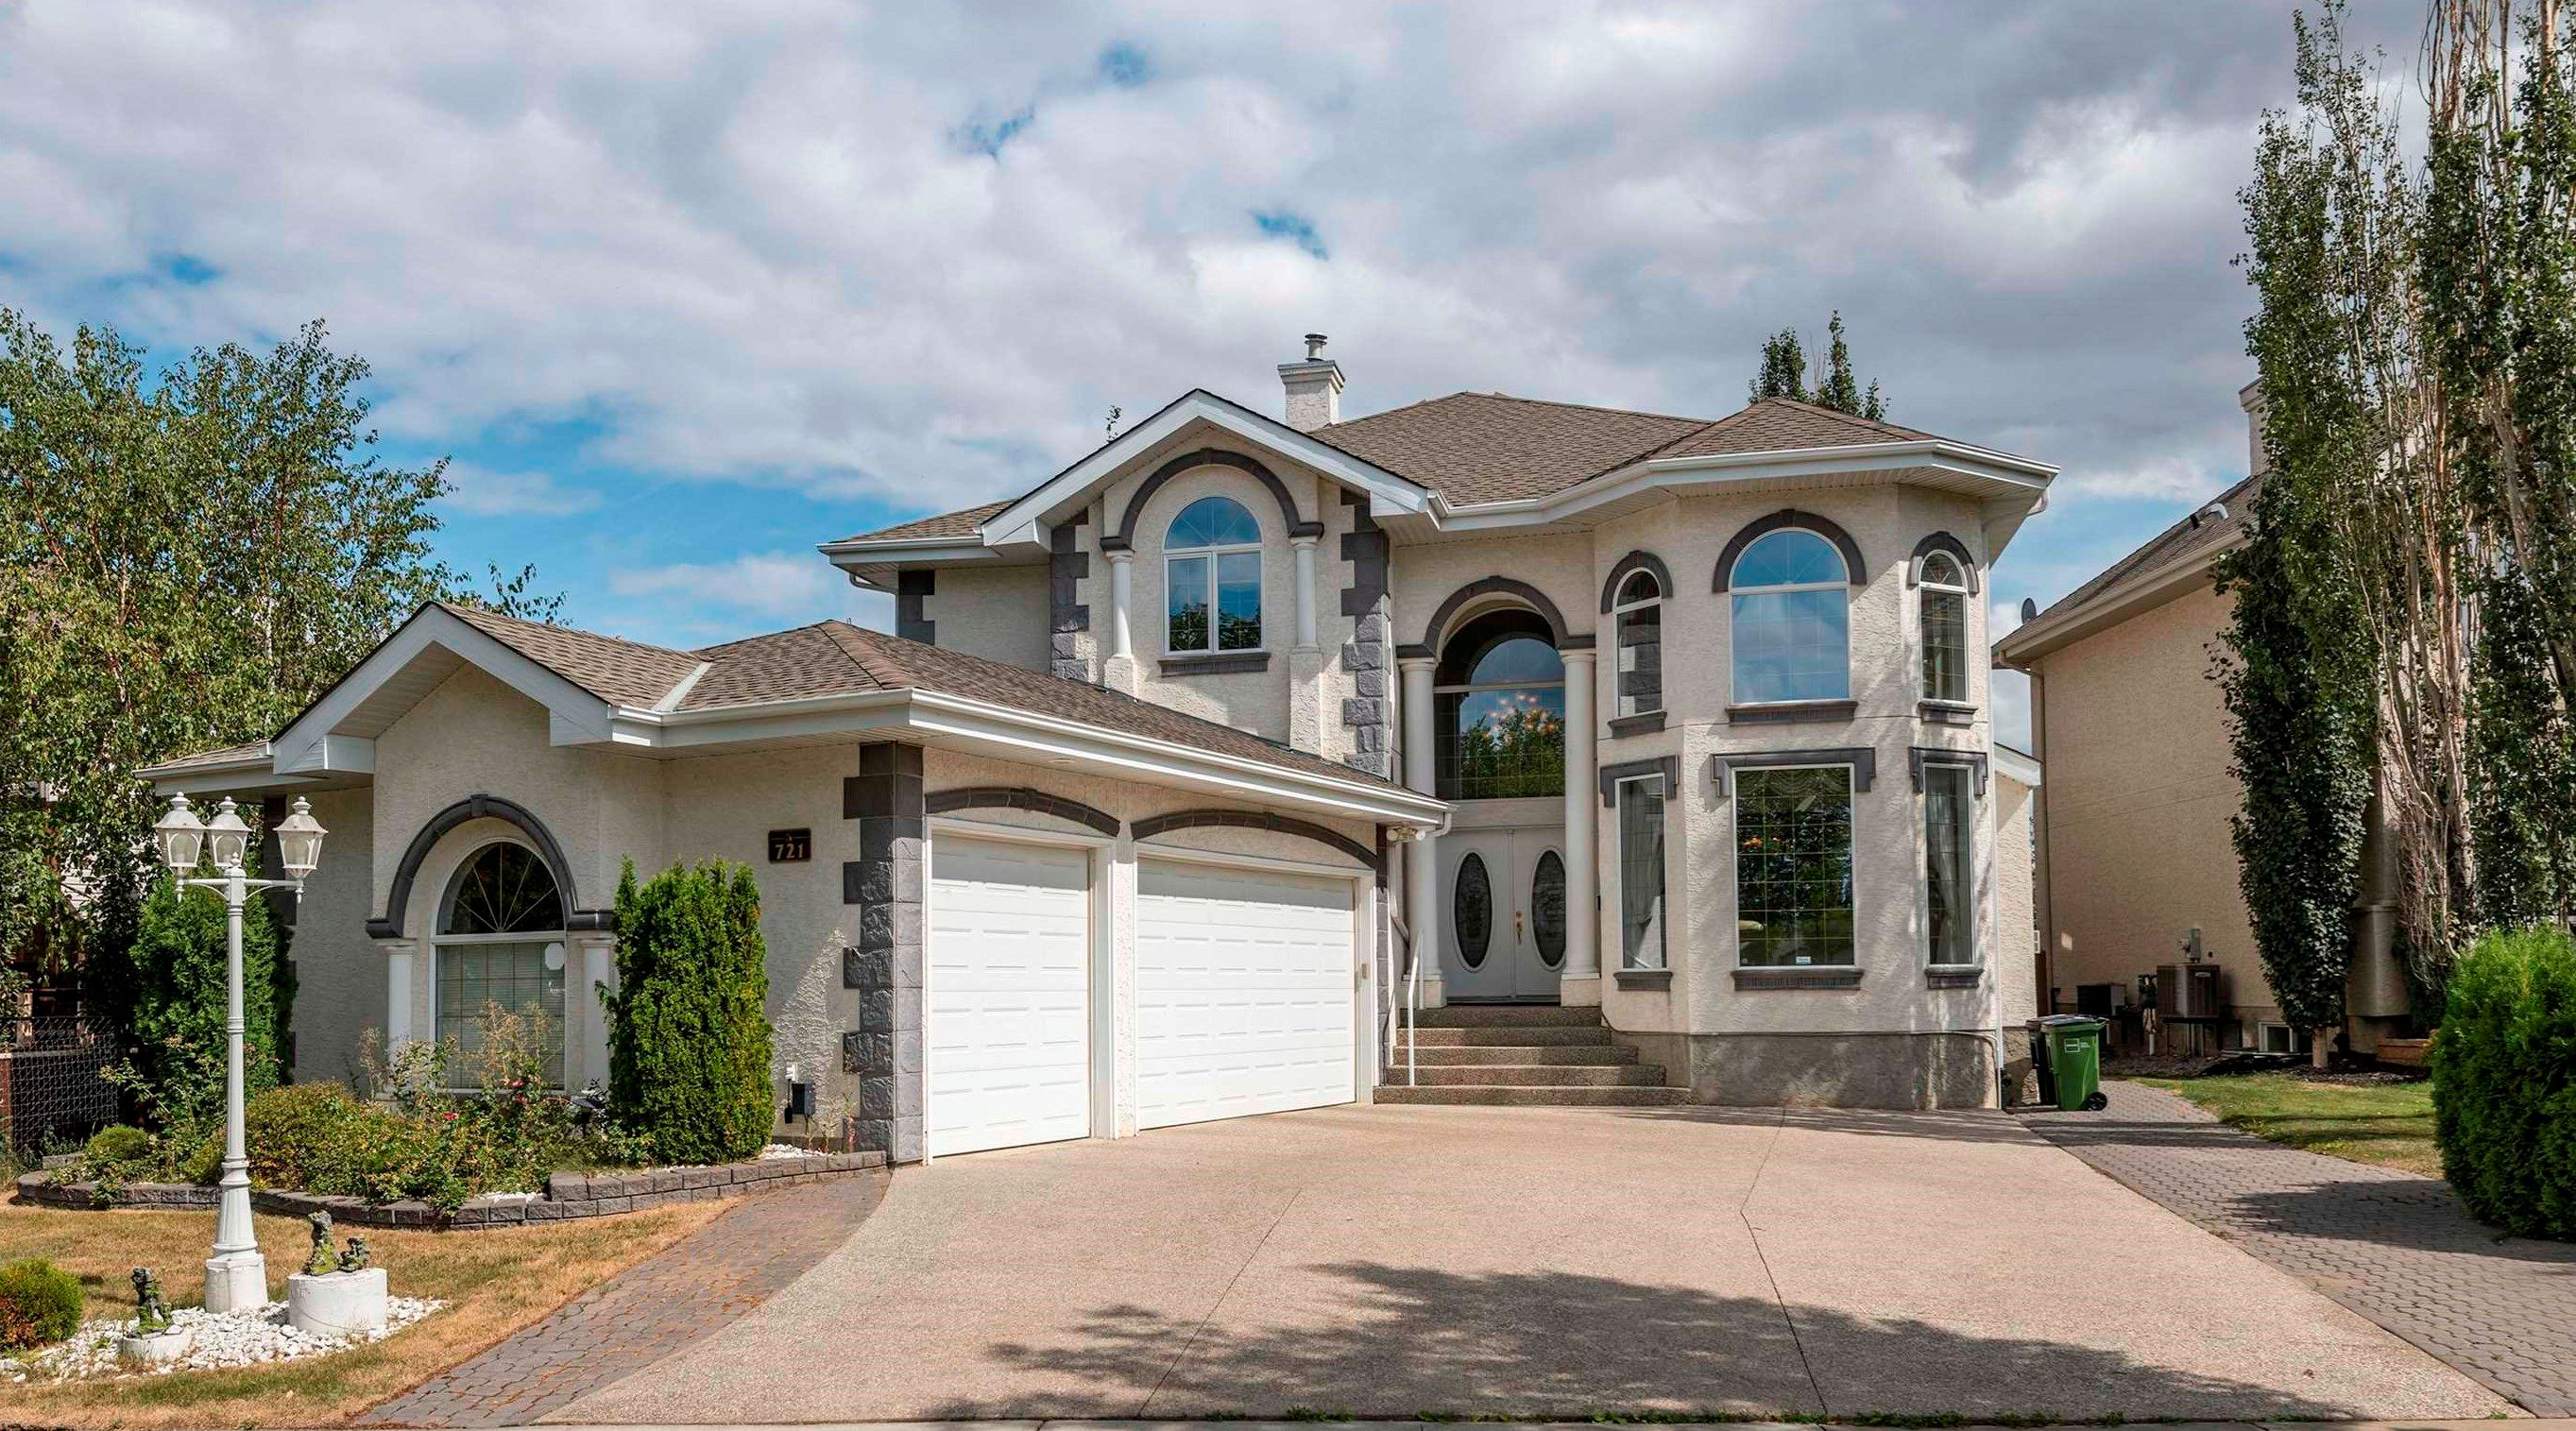 Main Photo: 721 HOLLINGSWORTH Green in Edmonton: Zone 14 House for sale : MLS®# E4259291